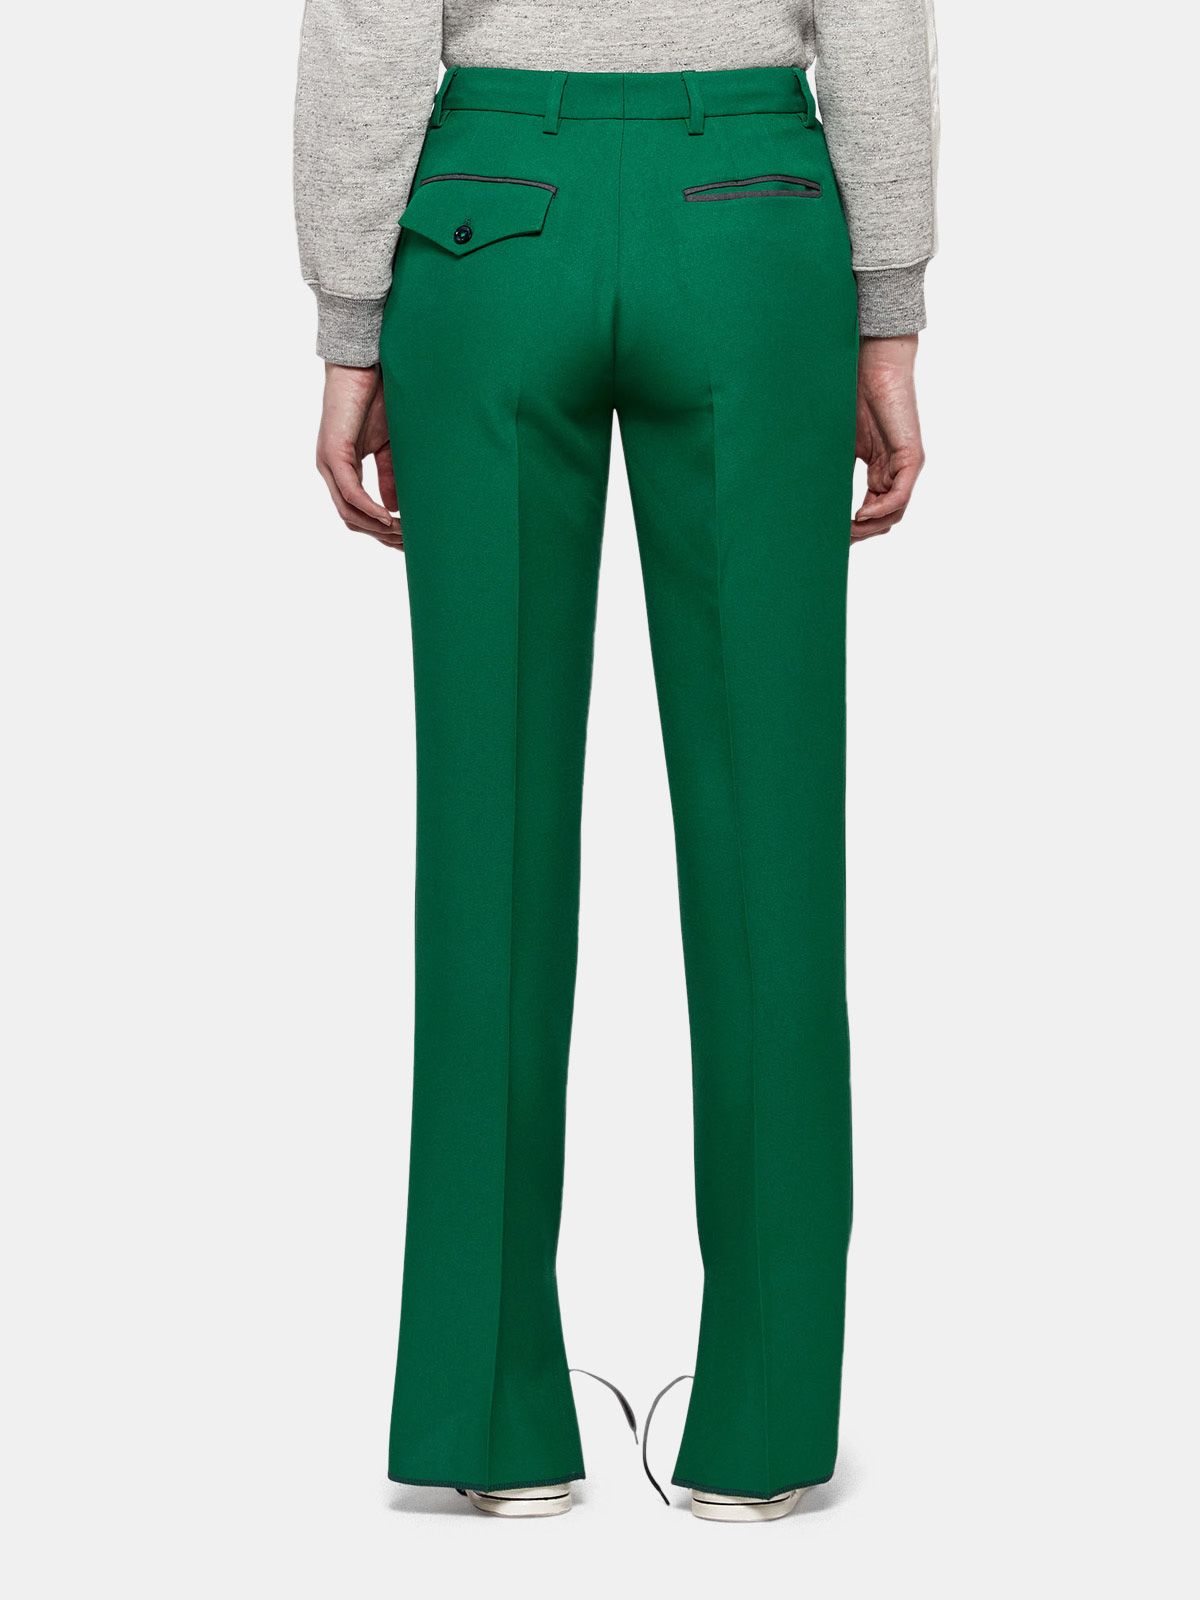 Golden Goose - Venice trousers in a technical fabric with adjustable length in